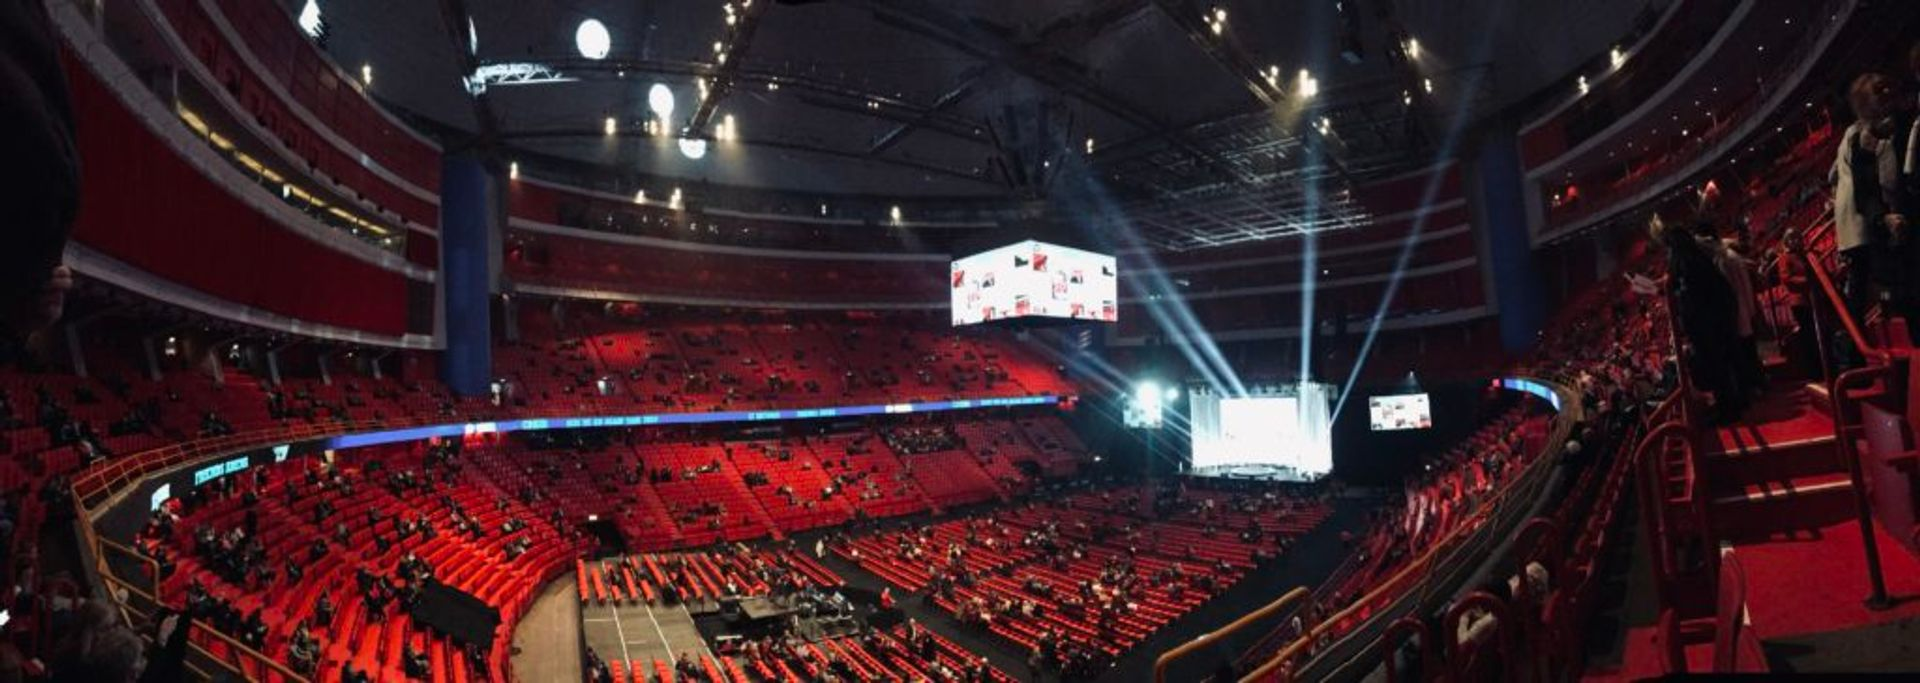 A wide shot view of the inside of Globen.